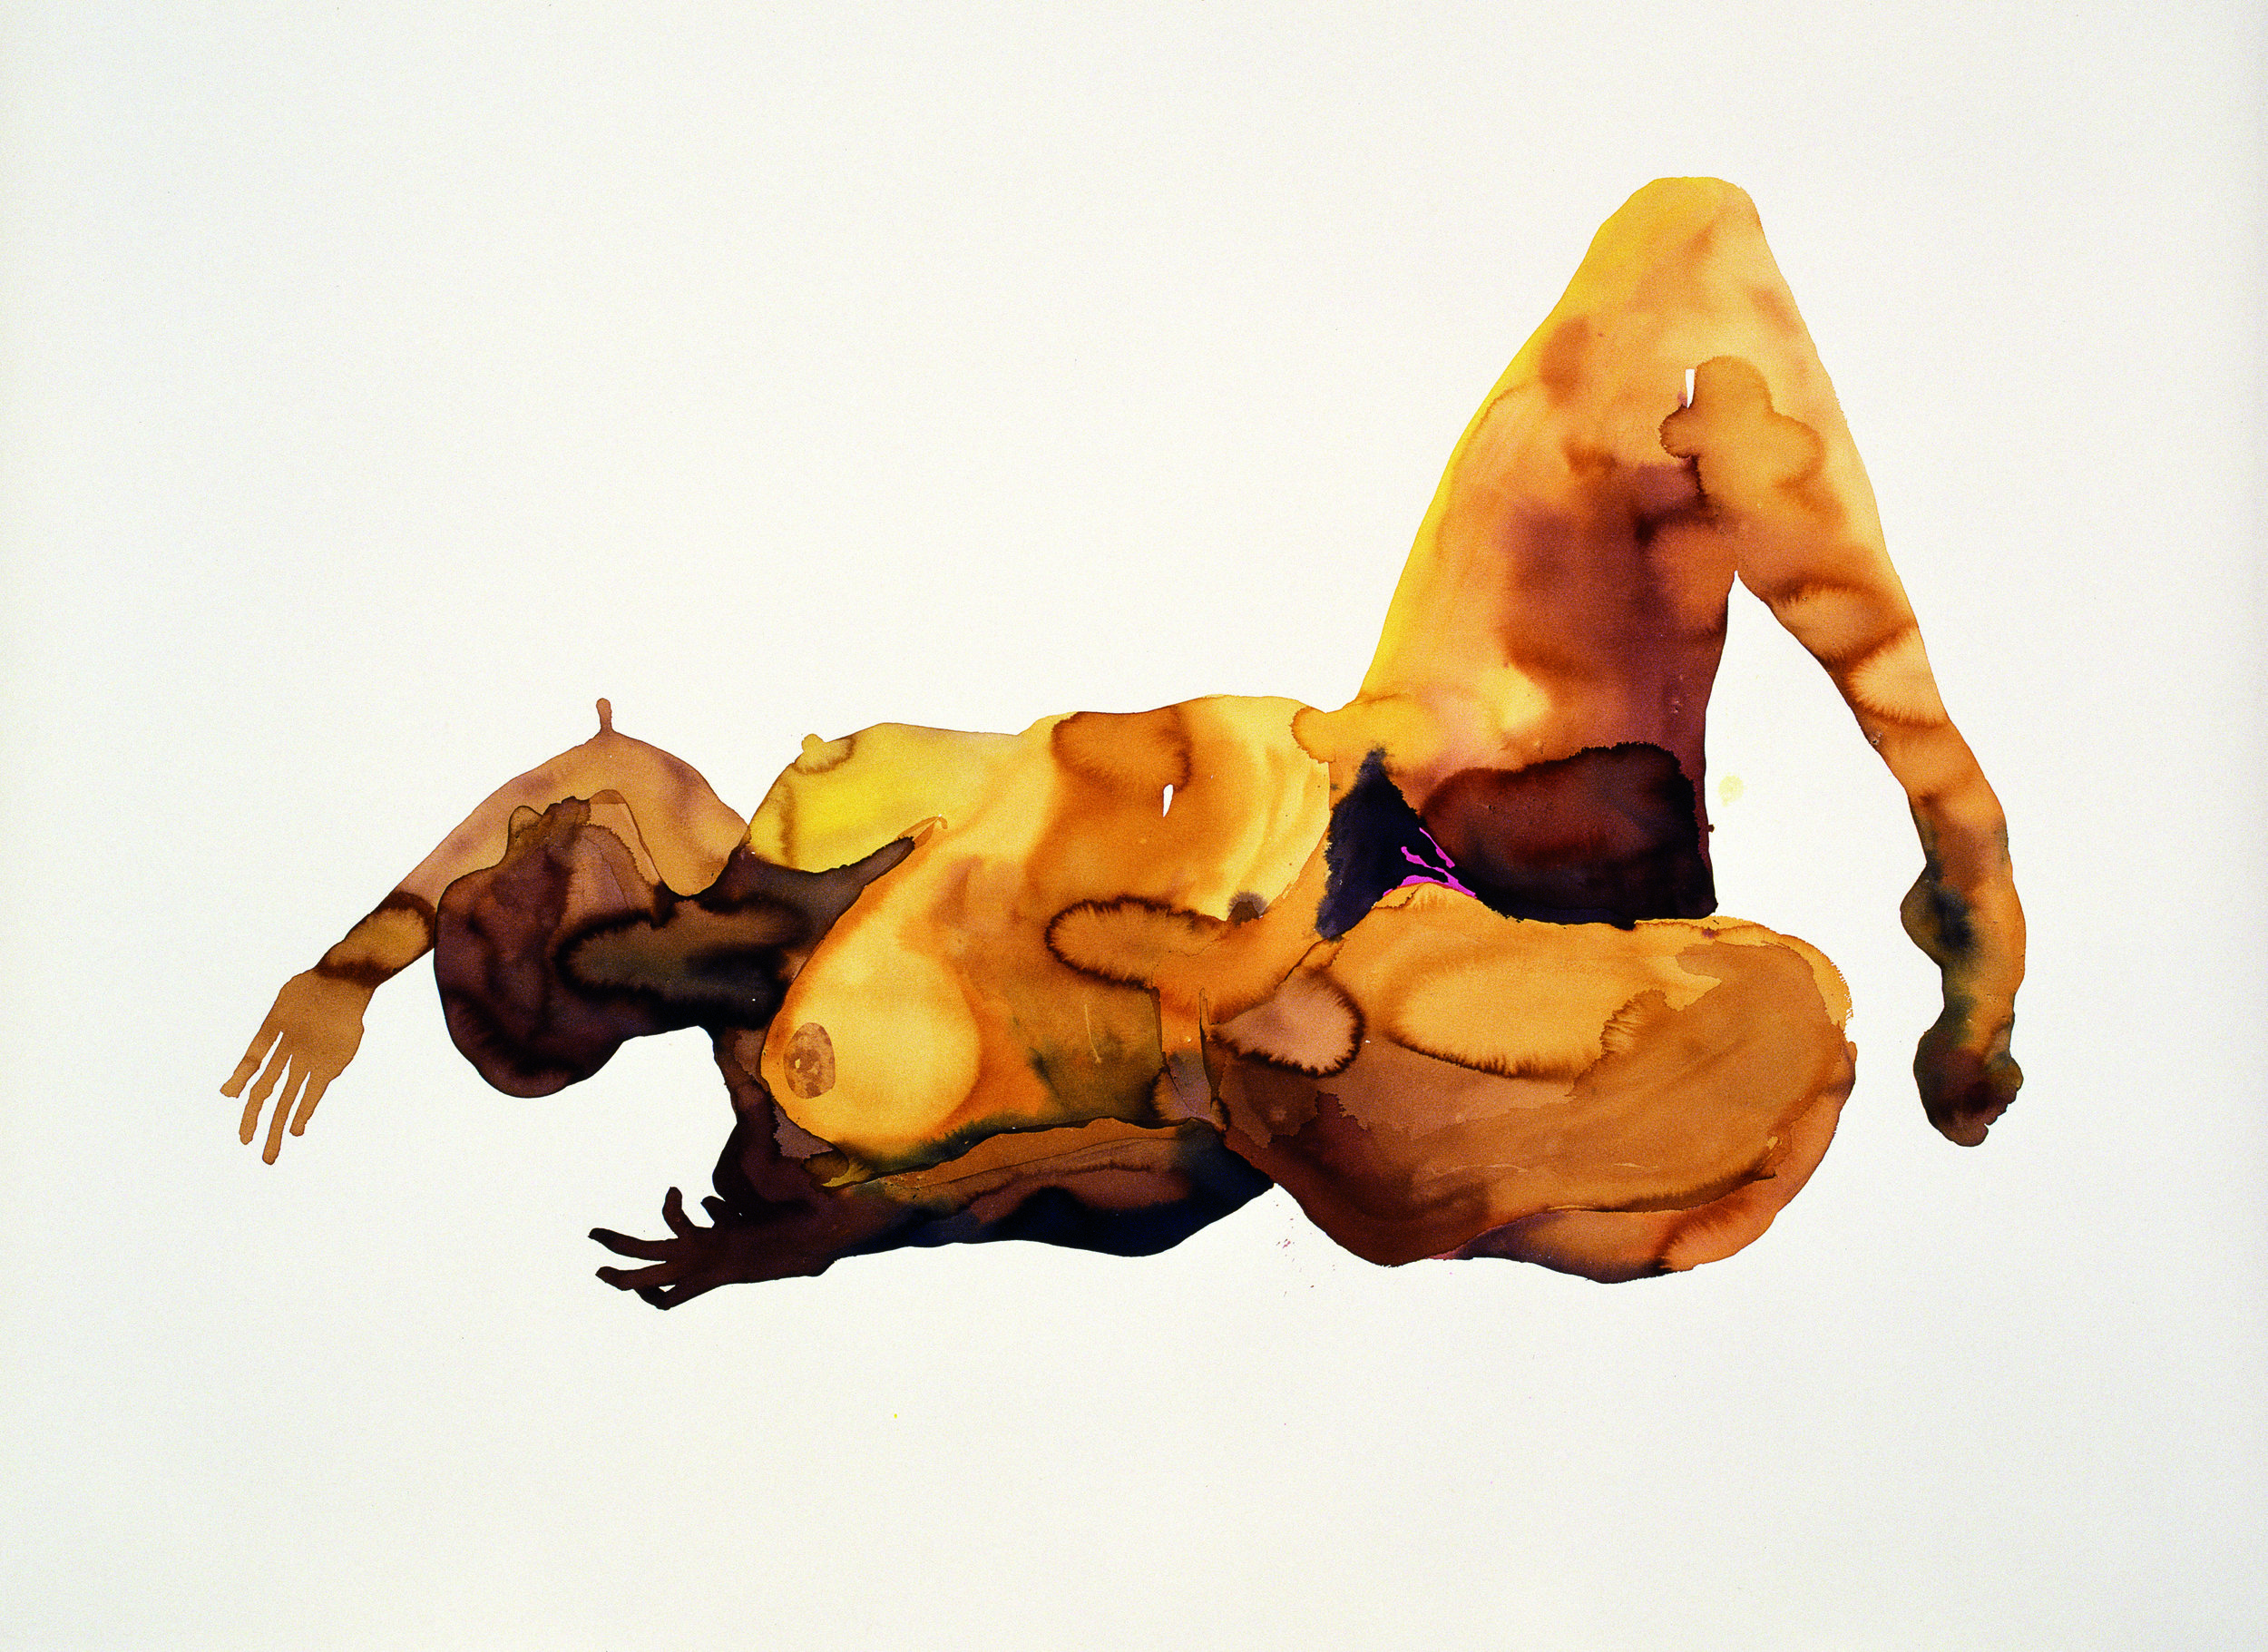 Senam Okudzeto, Large Reclining Nude, 2004, acrylic ink on Somerset paper, 86 in x 63 in. Source: Photograph by the artist and Mario Todeschini. Image courtesy of the artist.